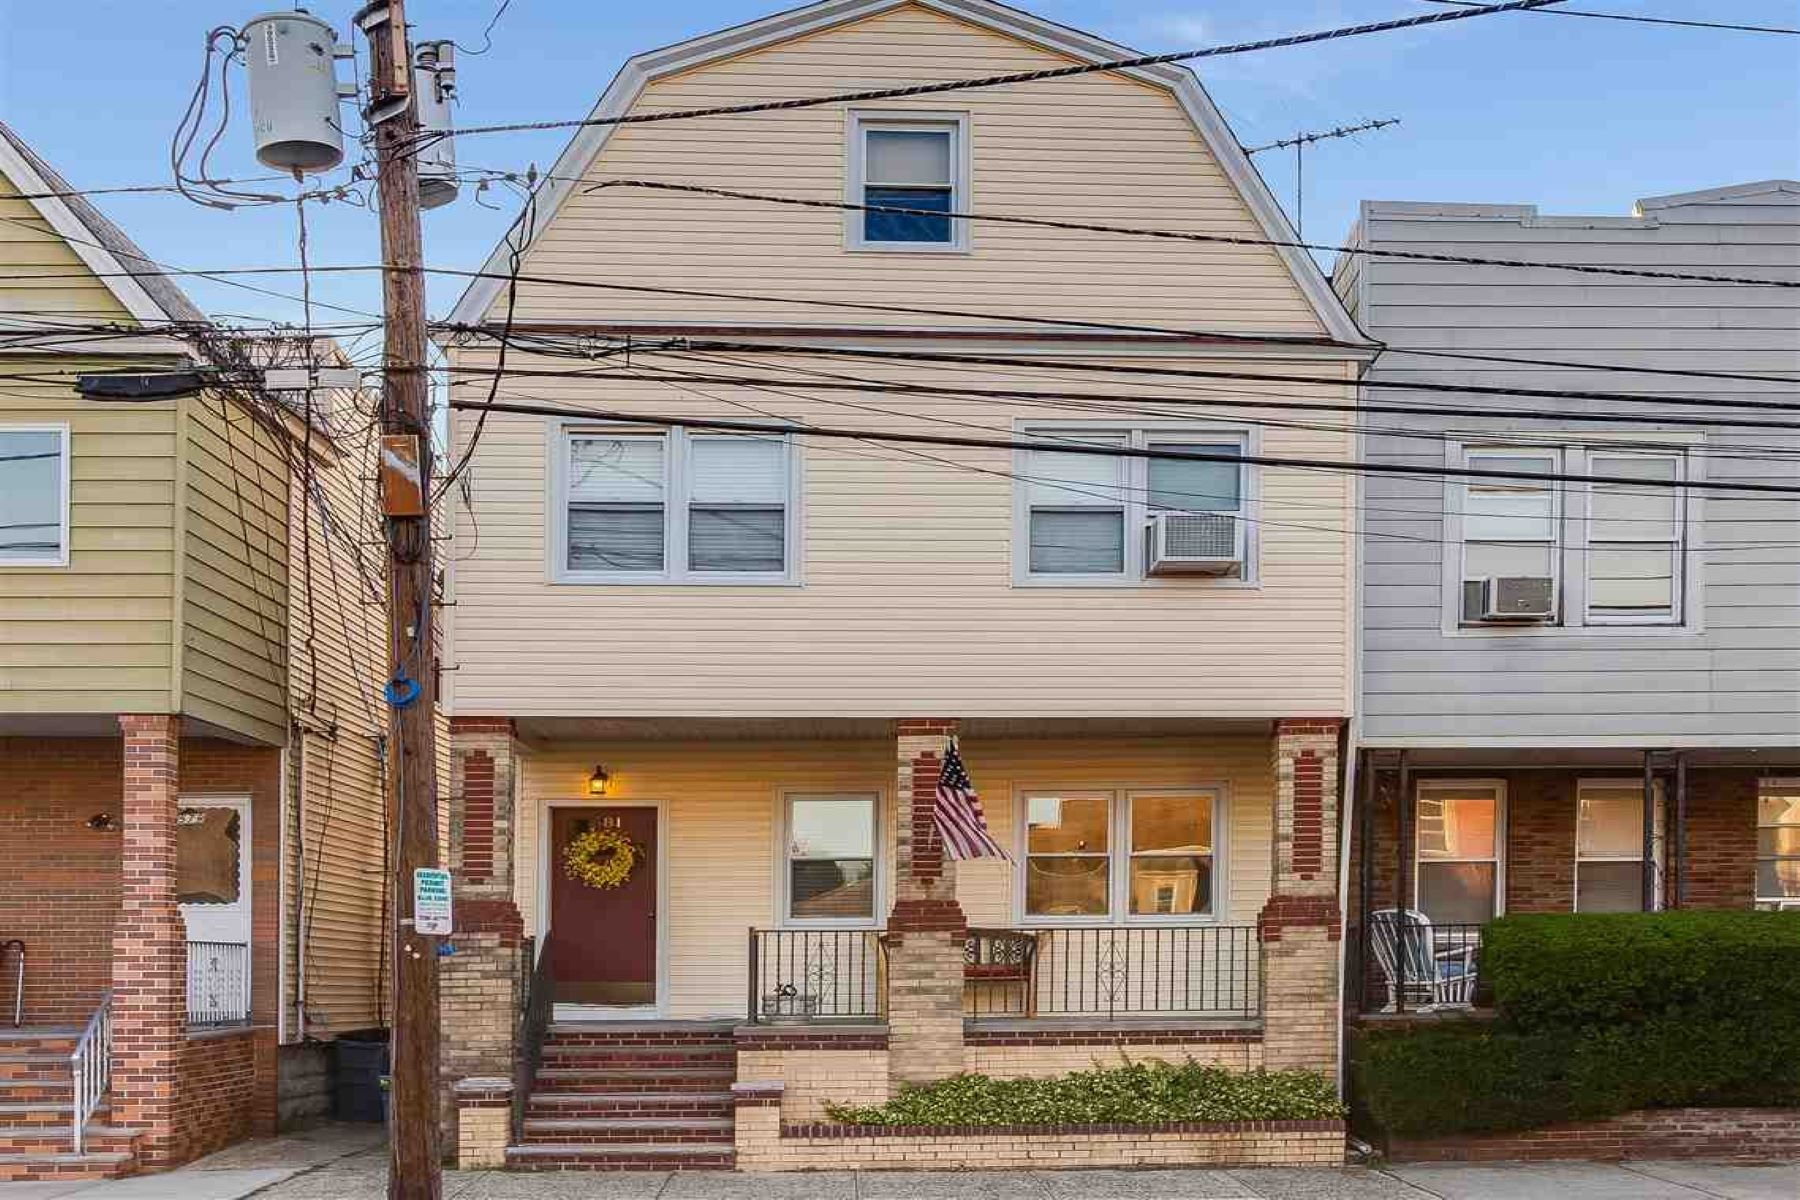 2 bedroom apt in well maintained four family. Close to Veterans Park, schools. 581 Avenue A, Unit 4, Bayonne, Nueva Jersey 07002 Estados Unidos